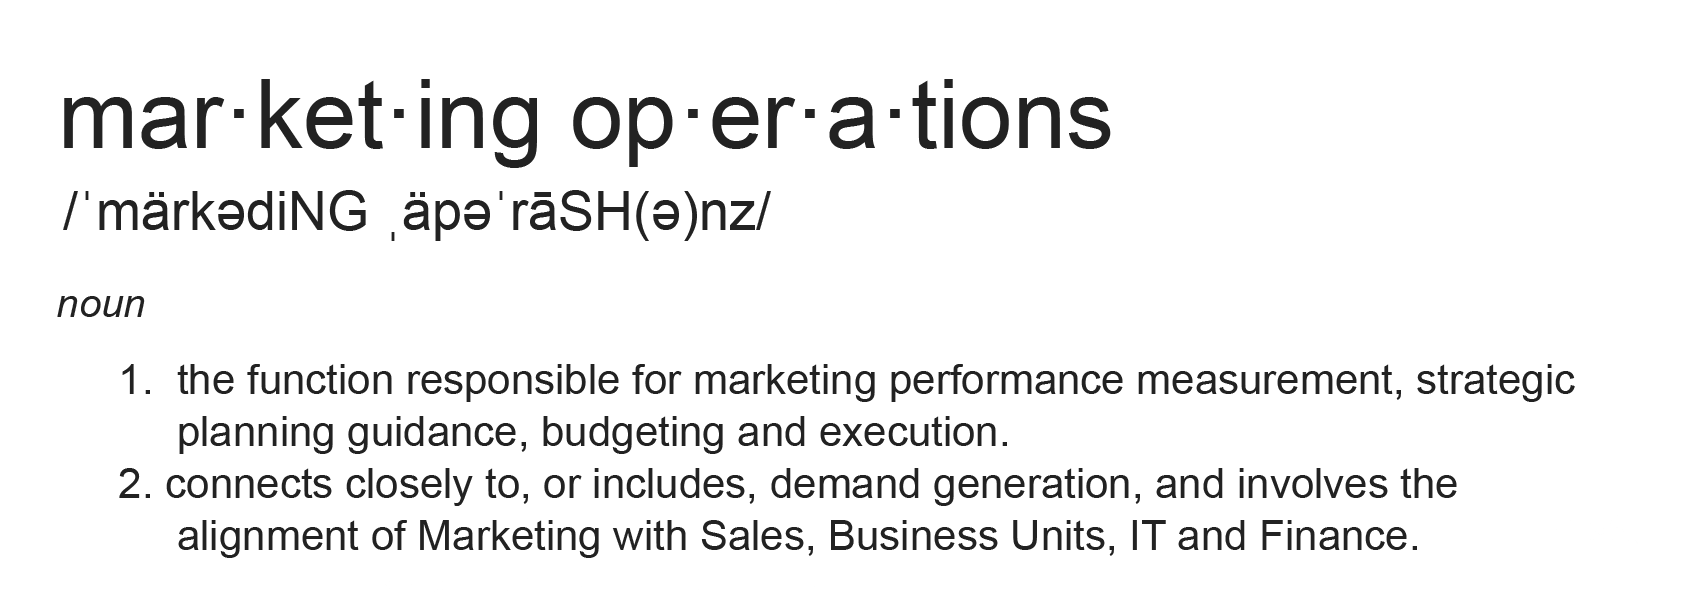 marketing_operations.png